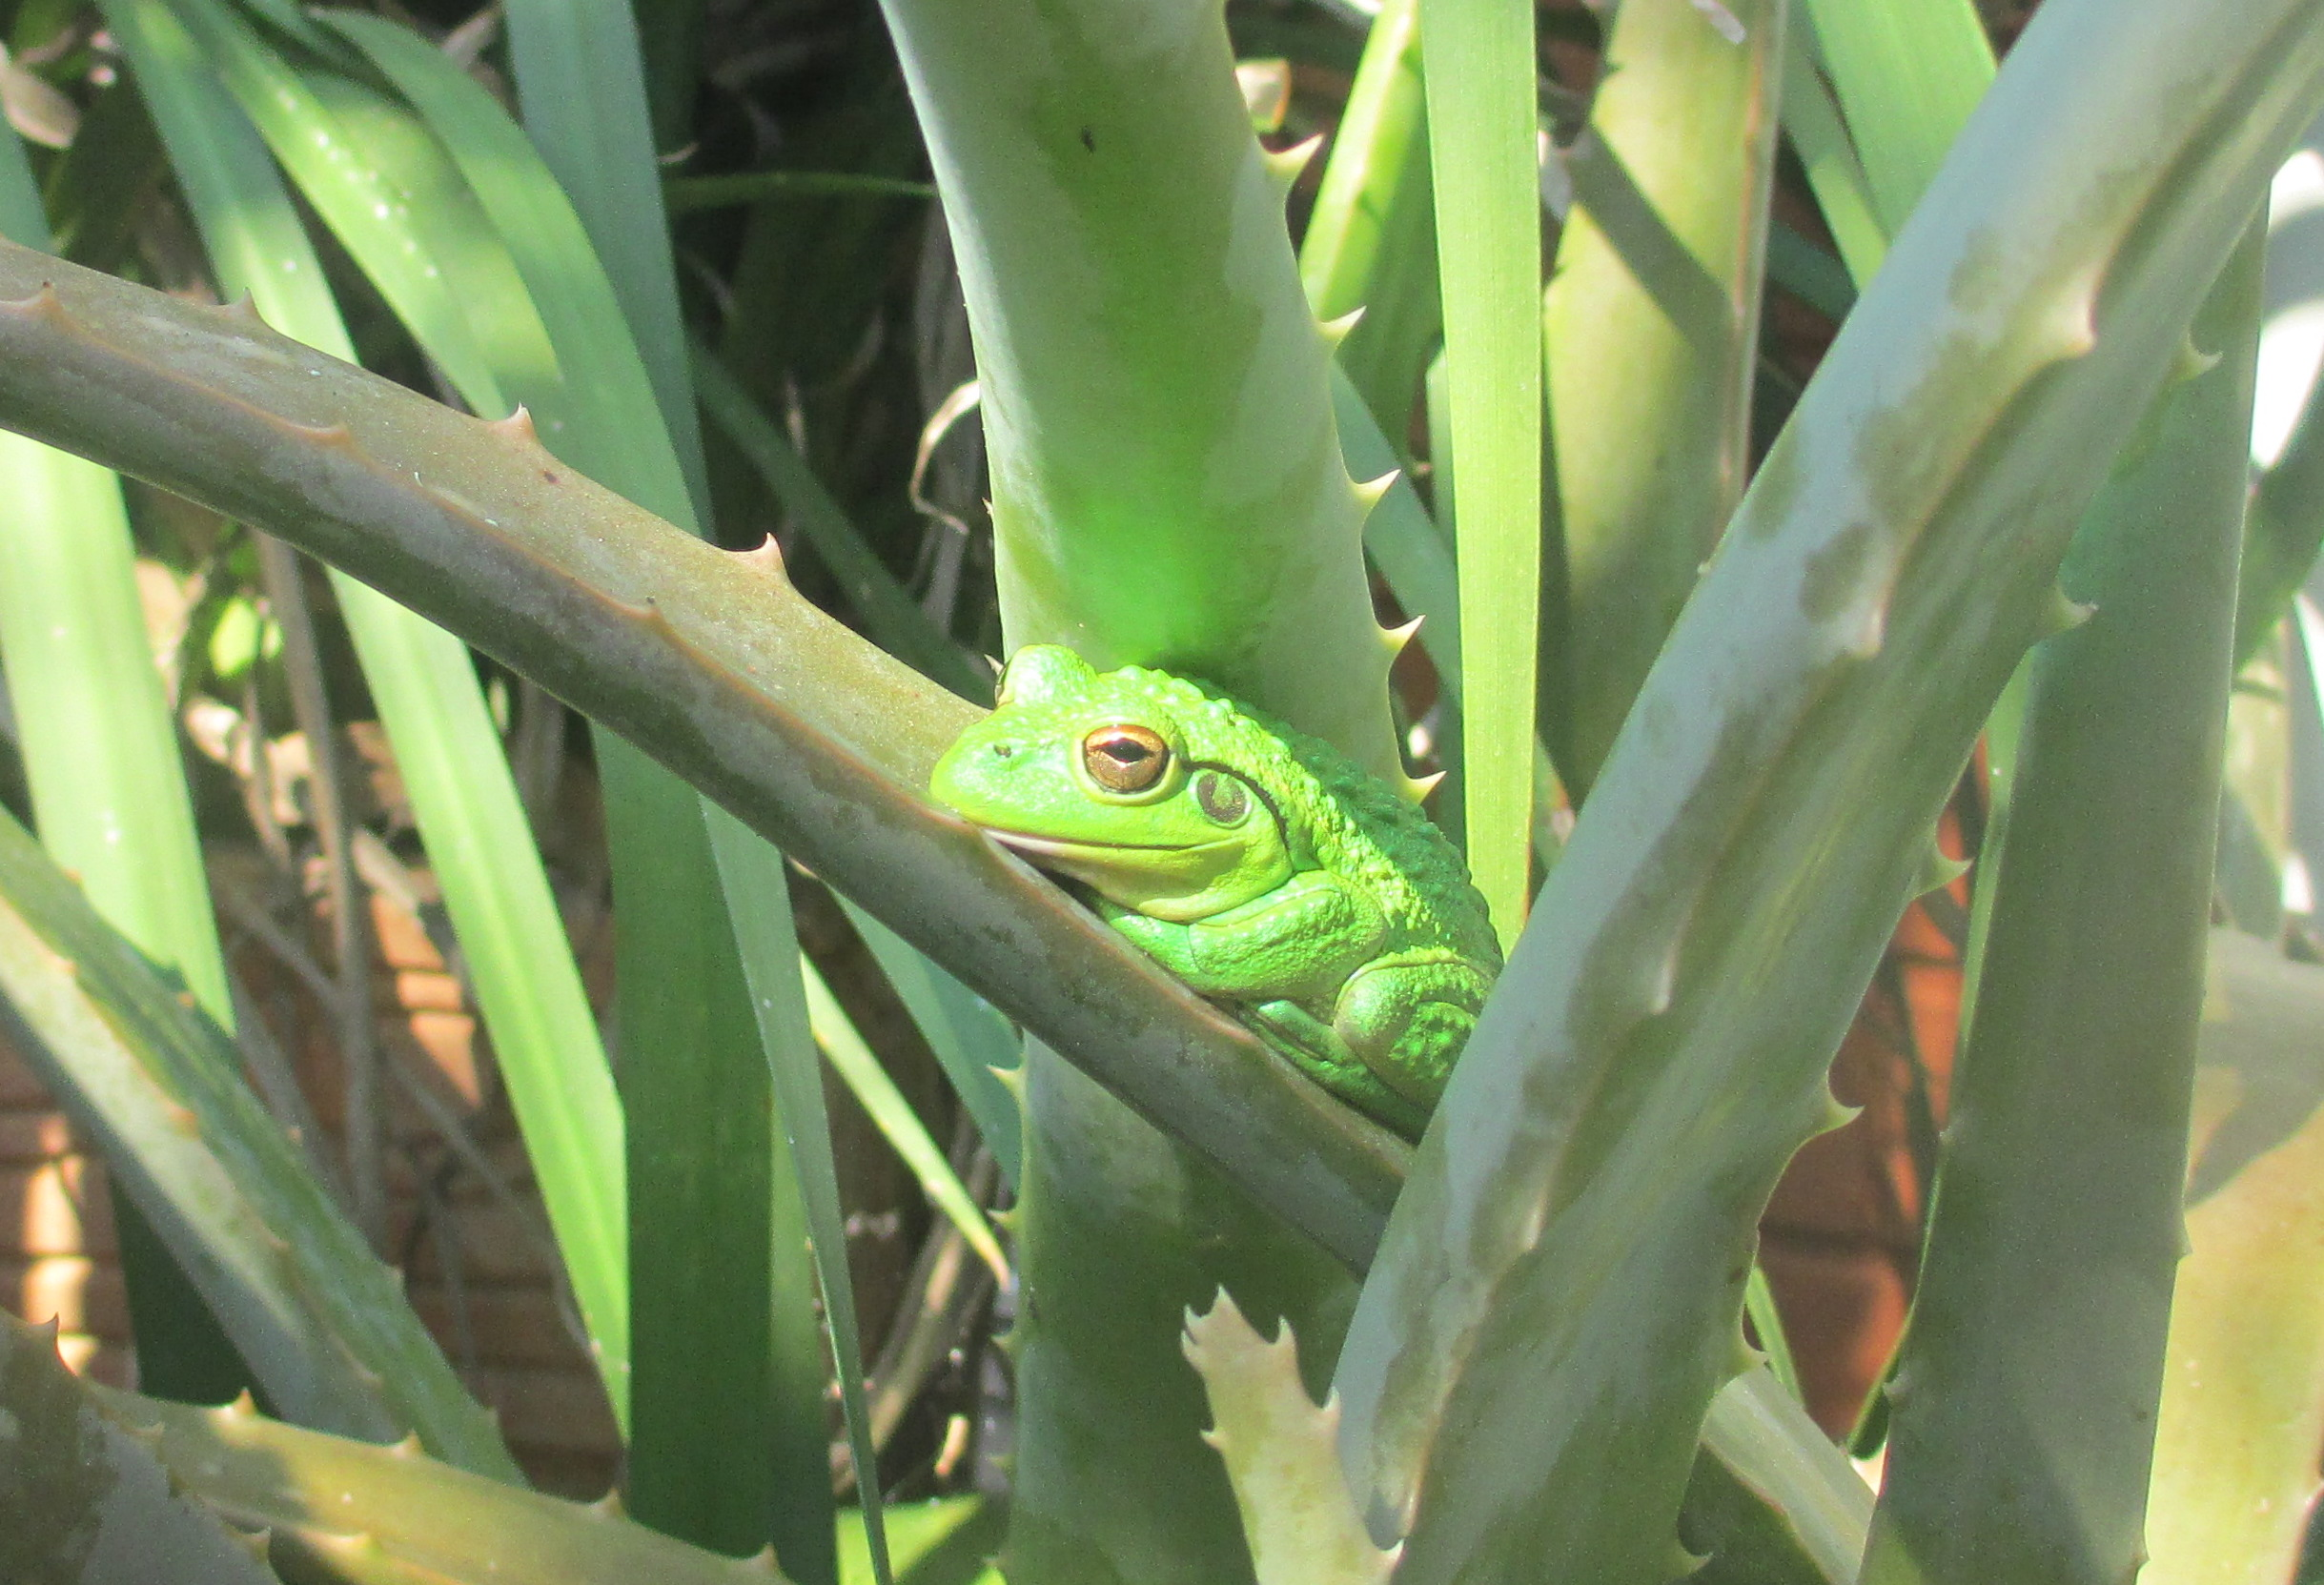 Hiding in the Aloe Vera